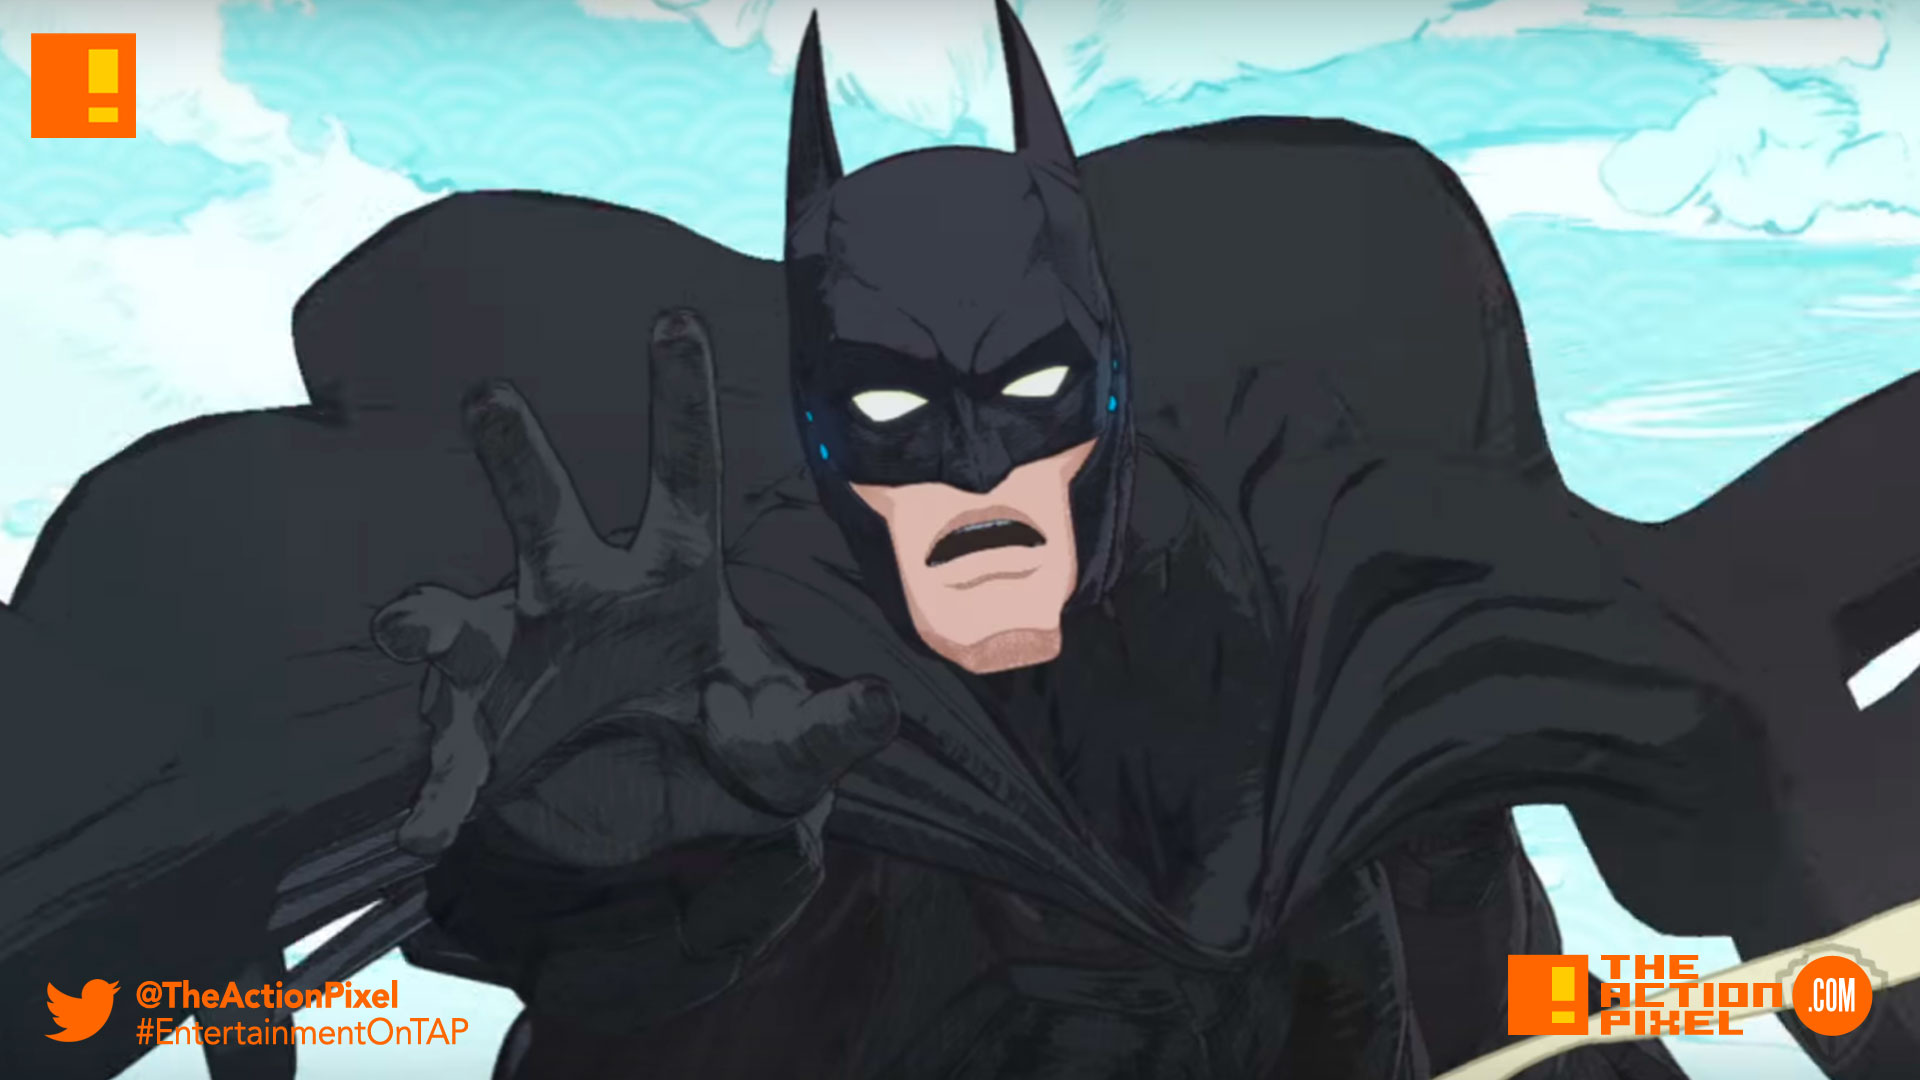 batman,ninja,dc comics, dc entertainment , the action pixel, entertainment on tap,poster, trailer, poster